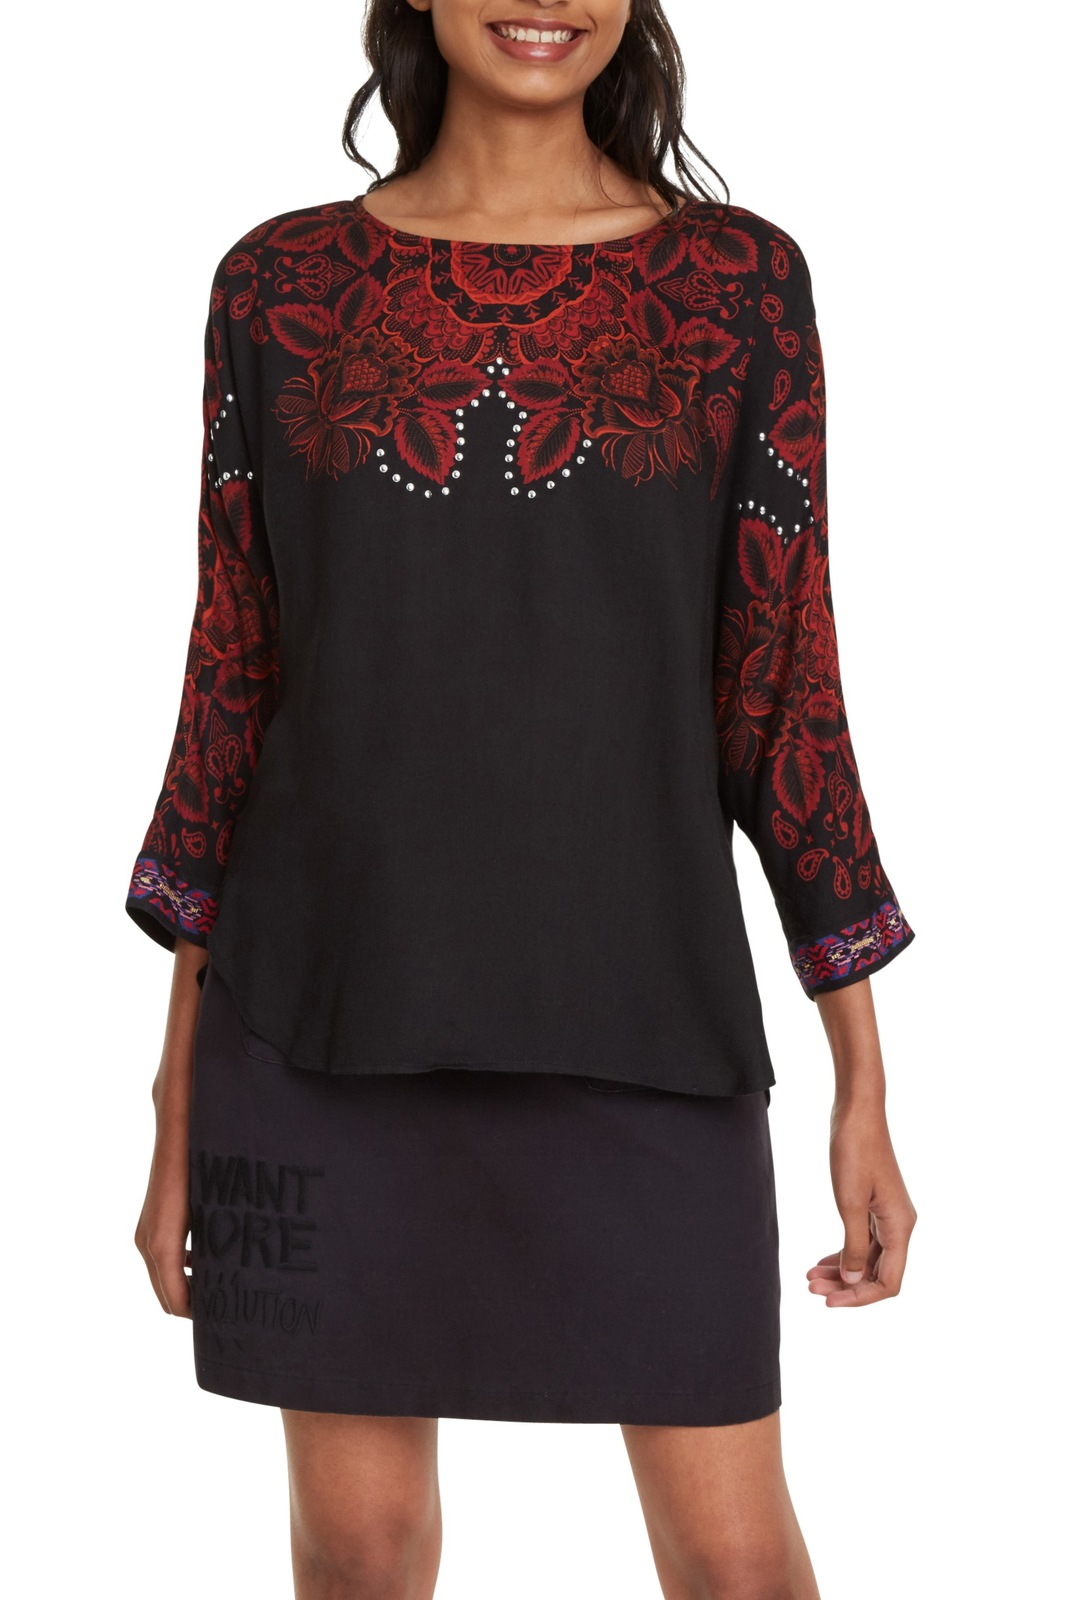 Desigual black top Blus Lumbe